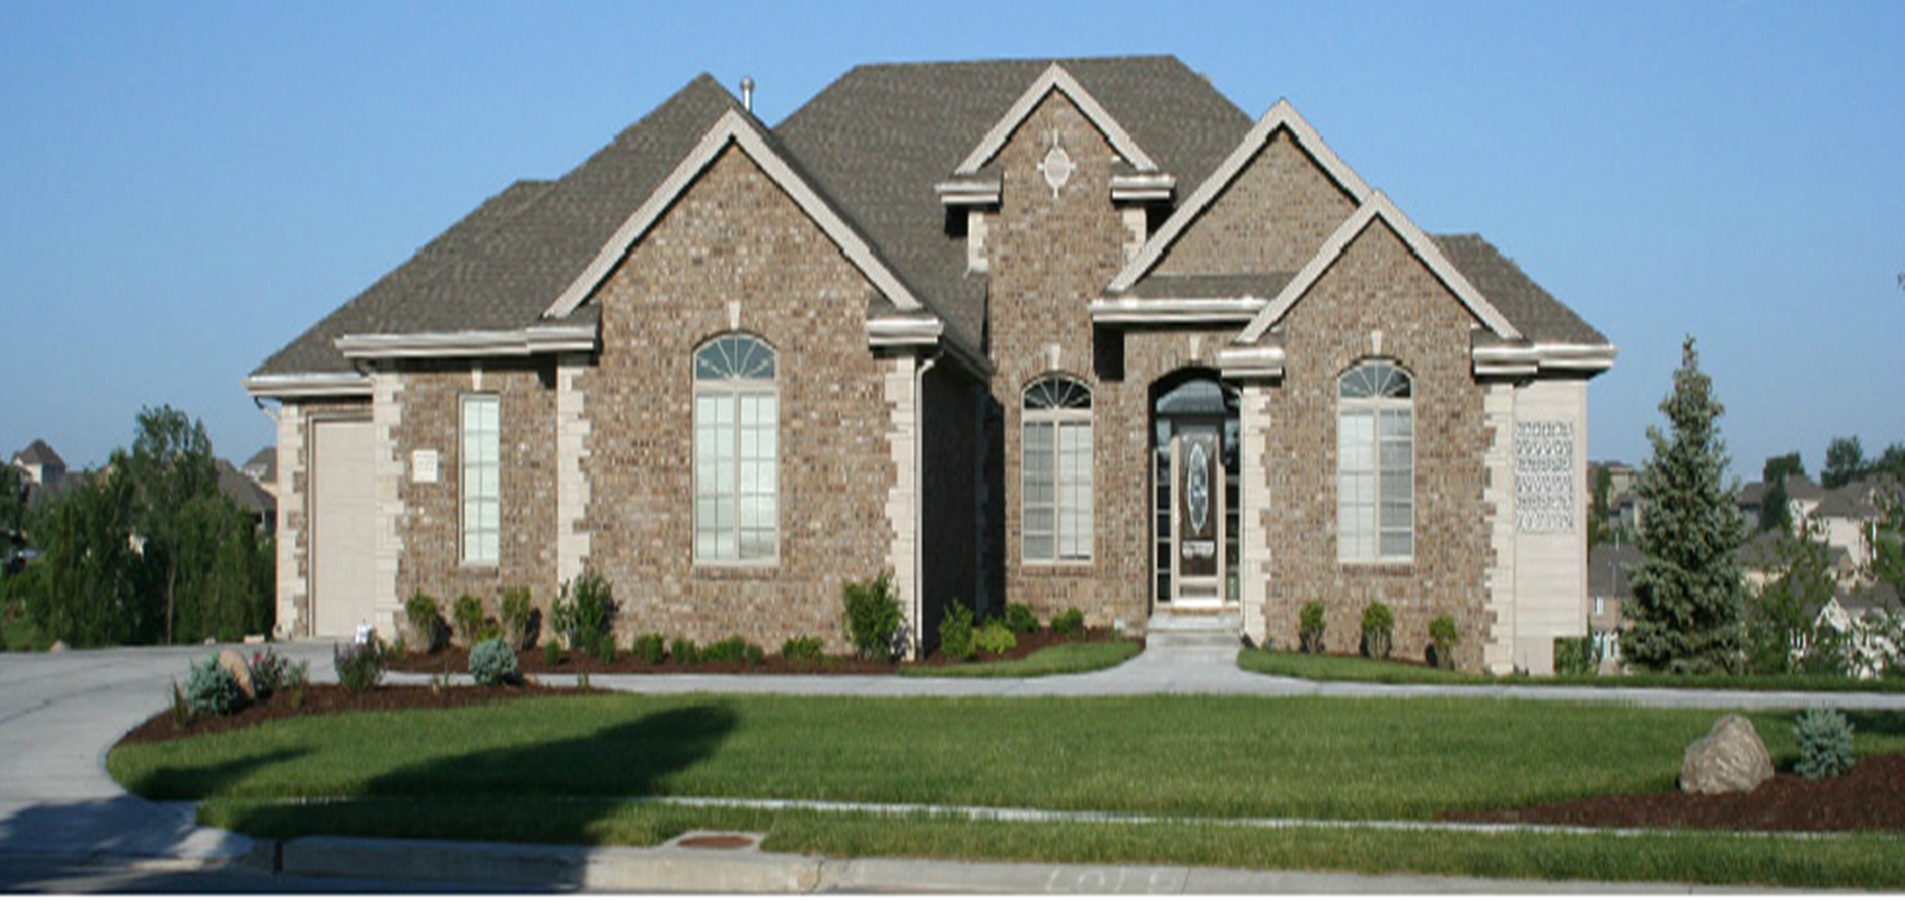 Birchwood homes inc omaha nebraska for Birchwood homes